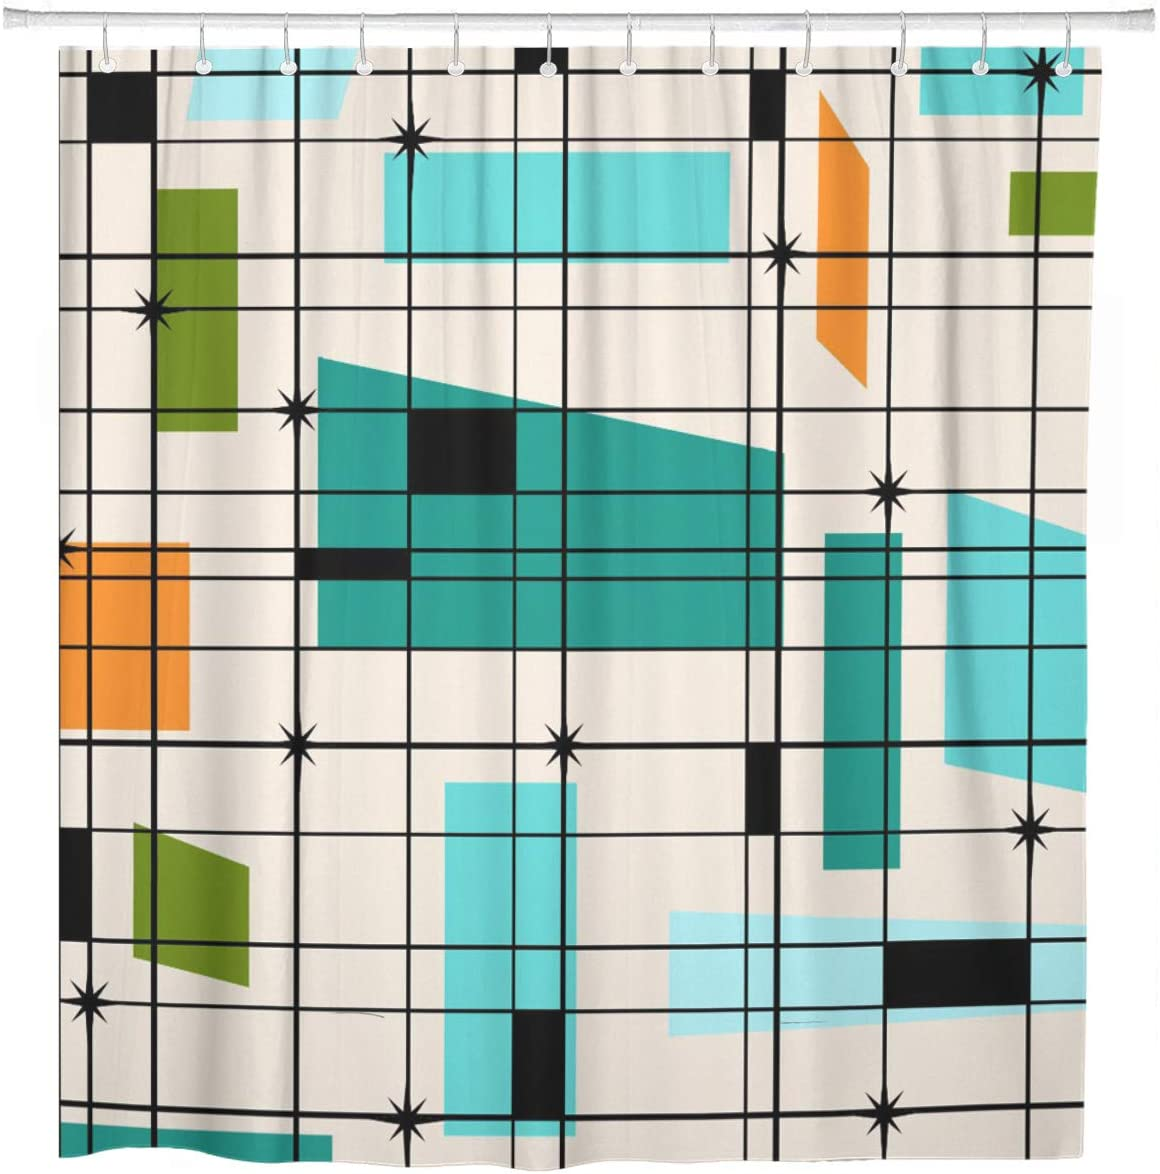 ArtSocket Shower Curtain Teal Max 83% OFF Mid Retro Grid Oran Starbursts 67% OFF of fixed price and